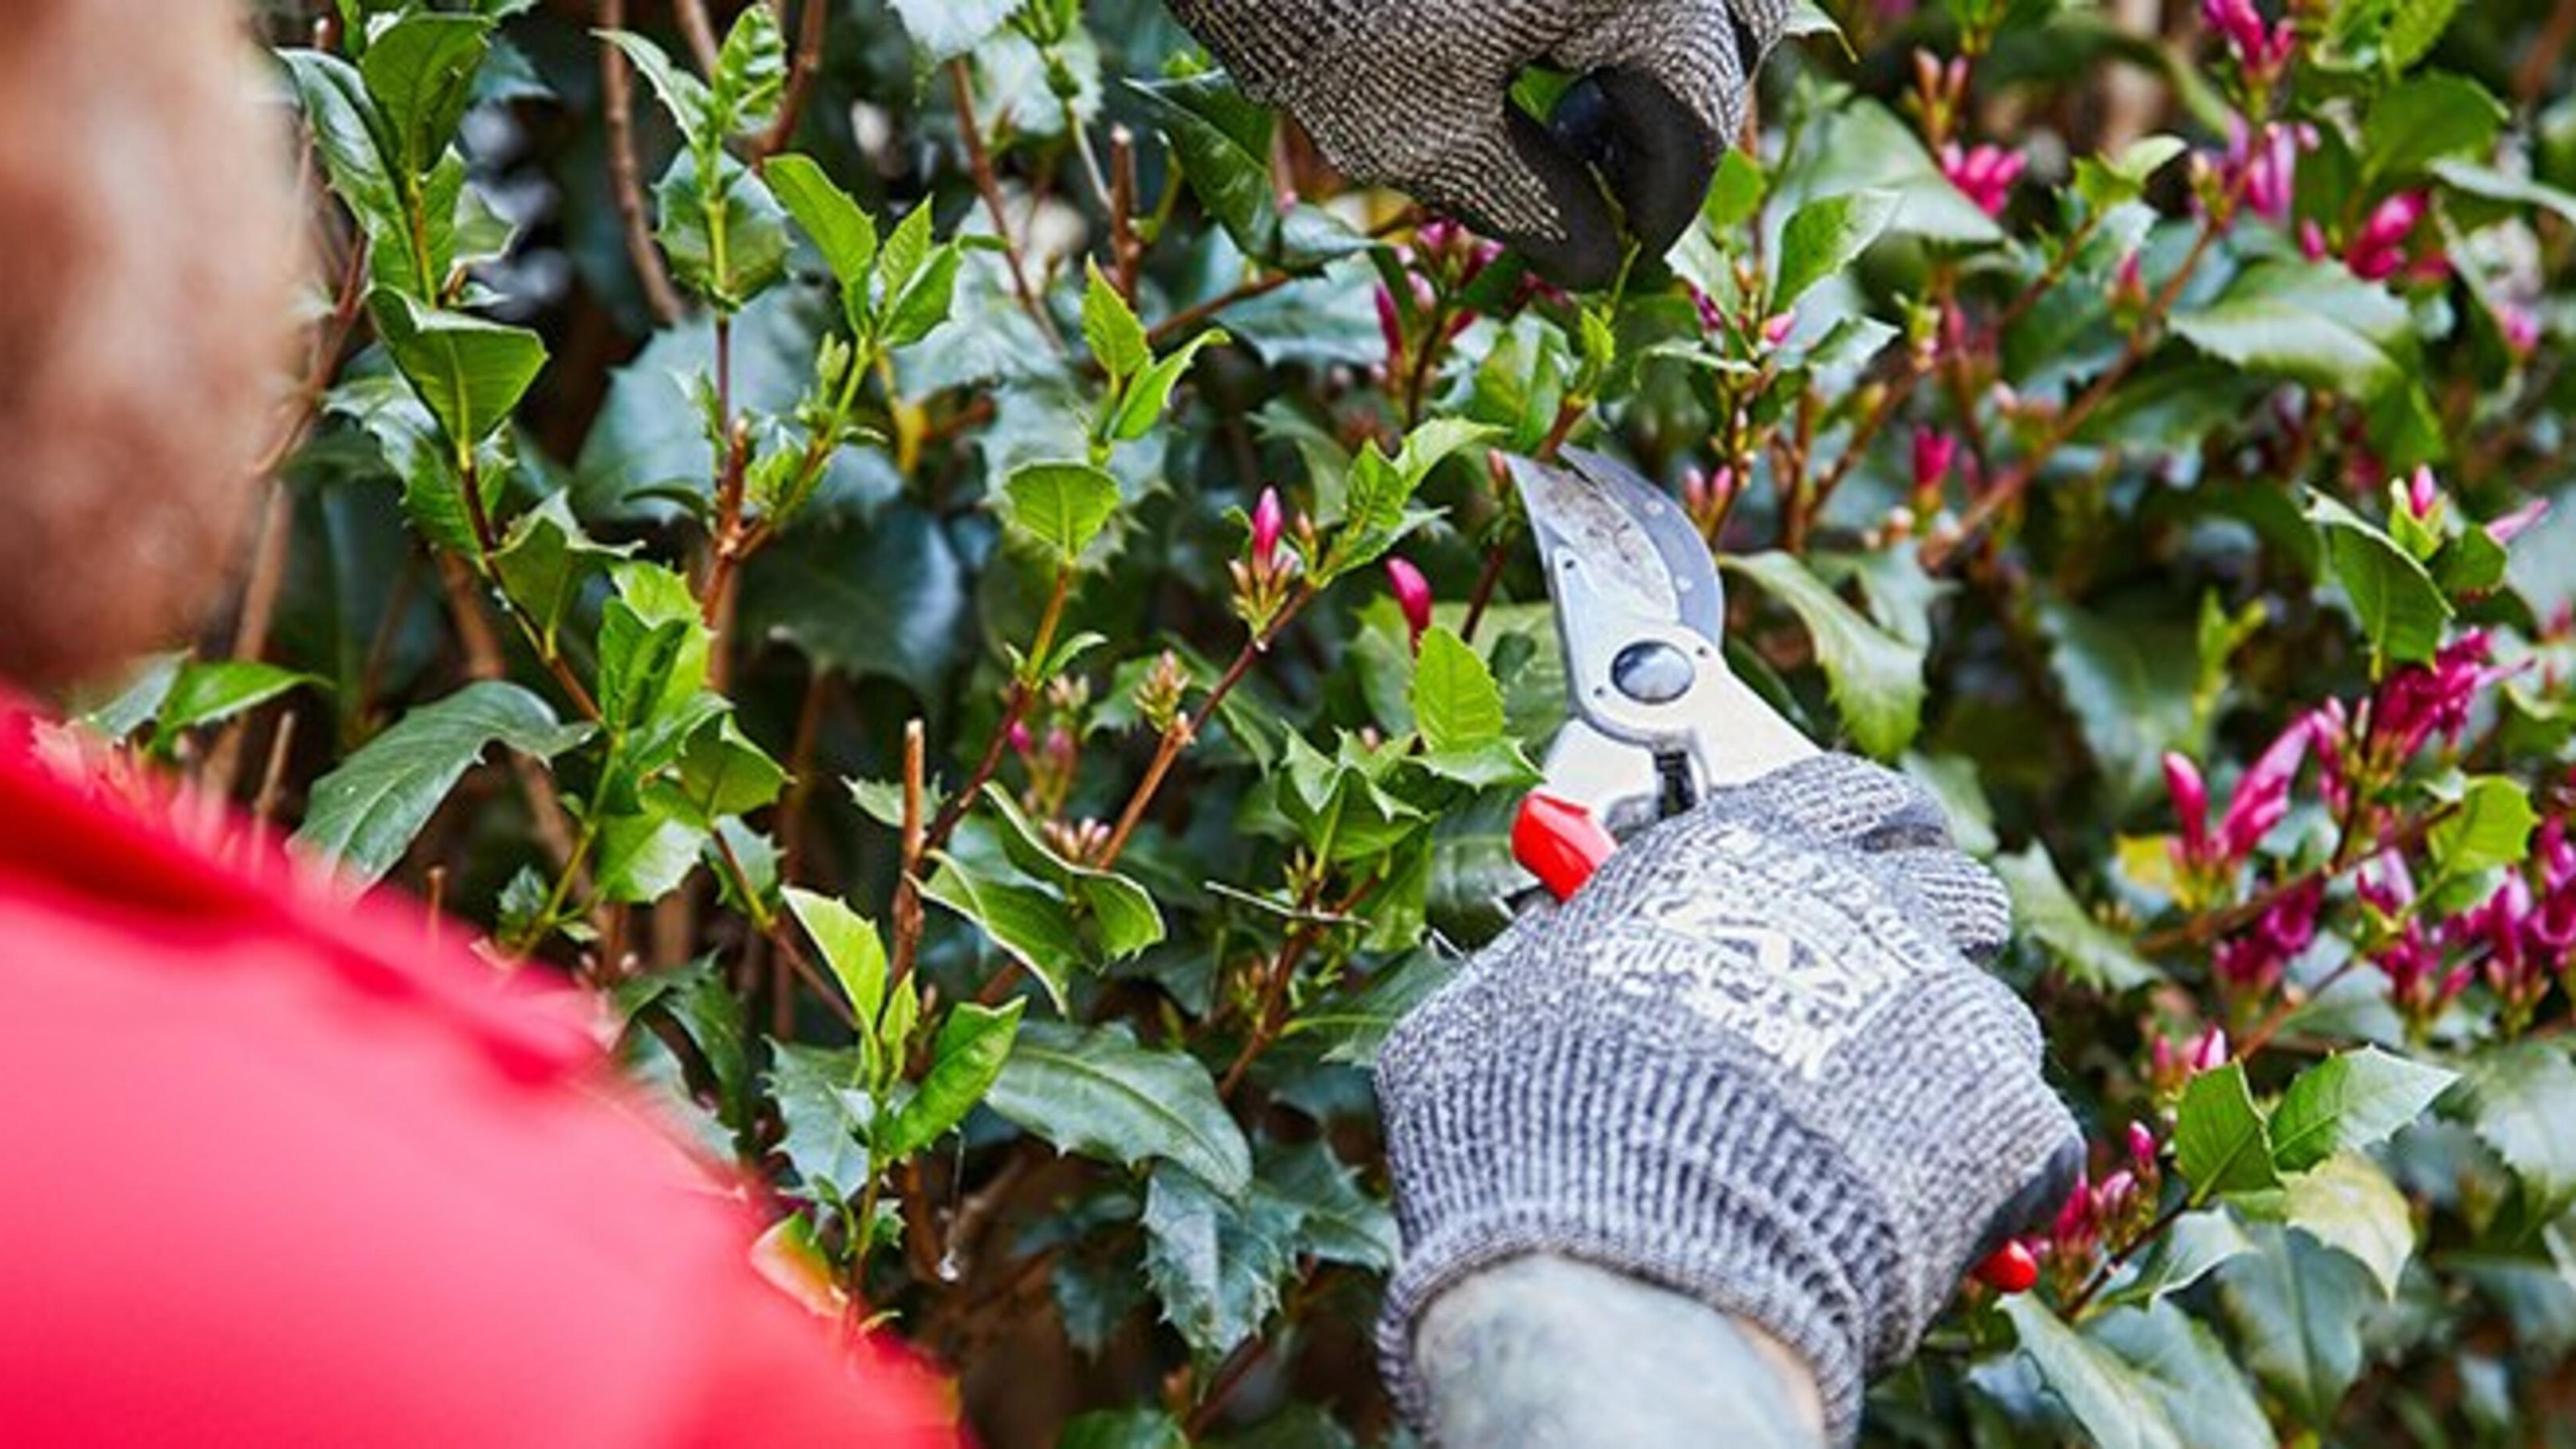 Pruning a flower bush with secateurs